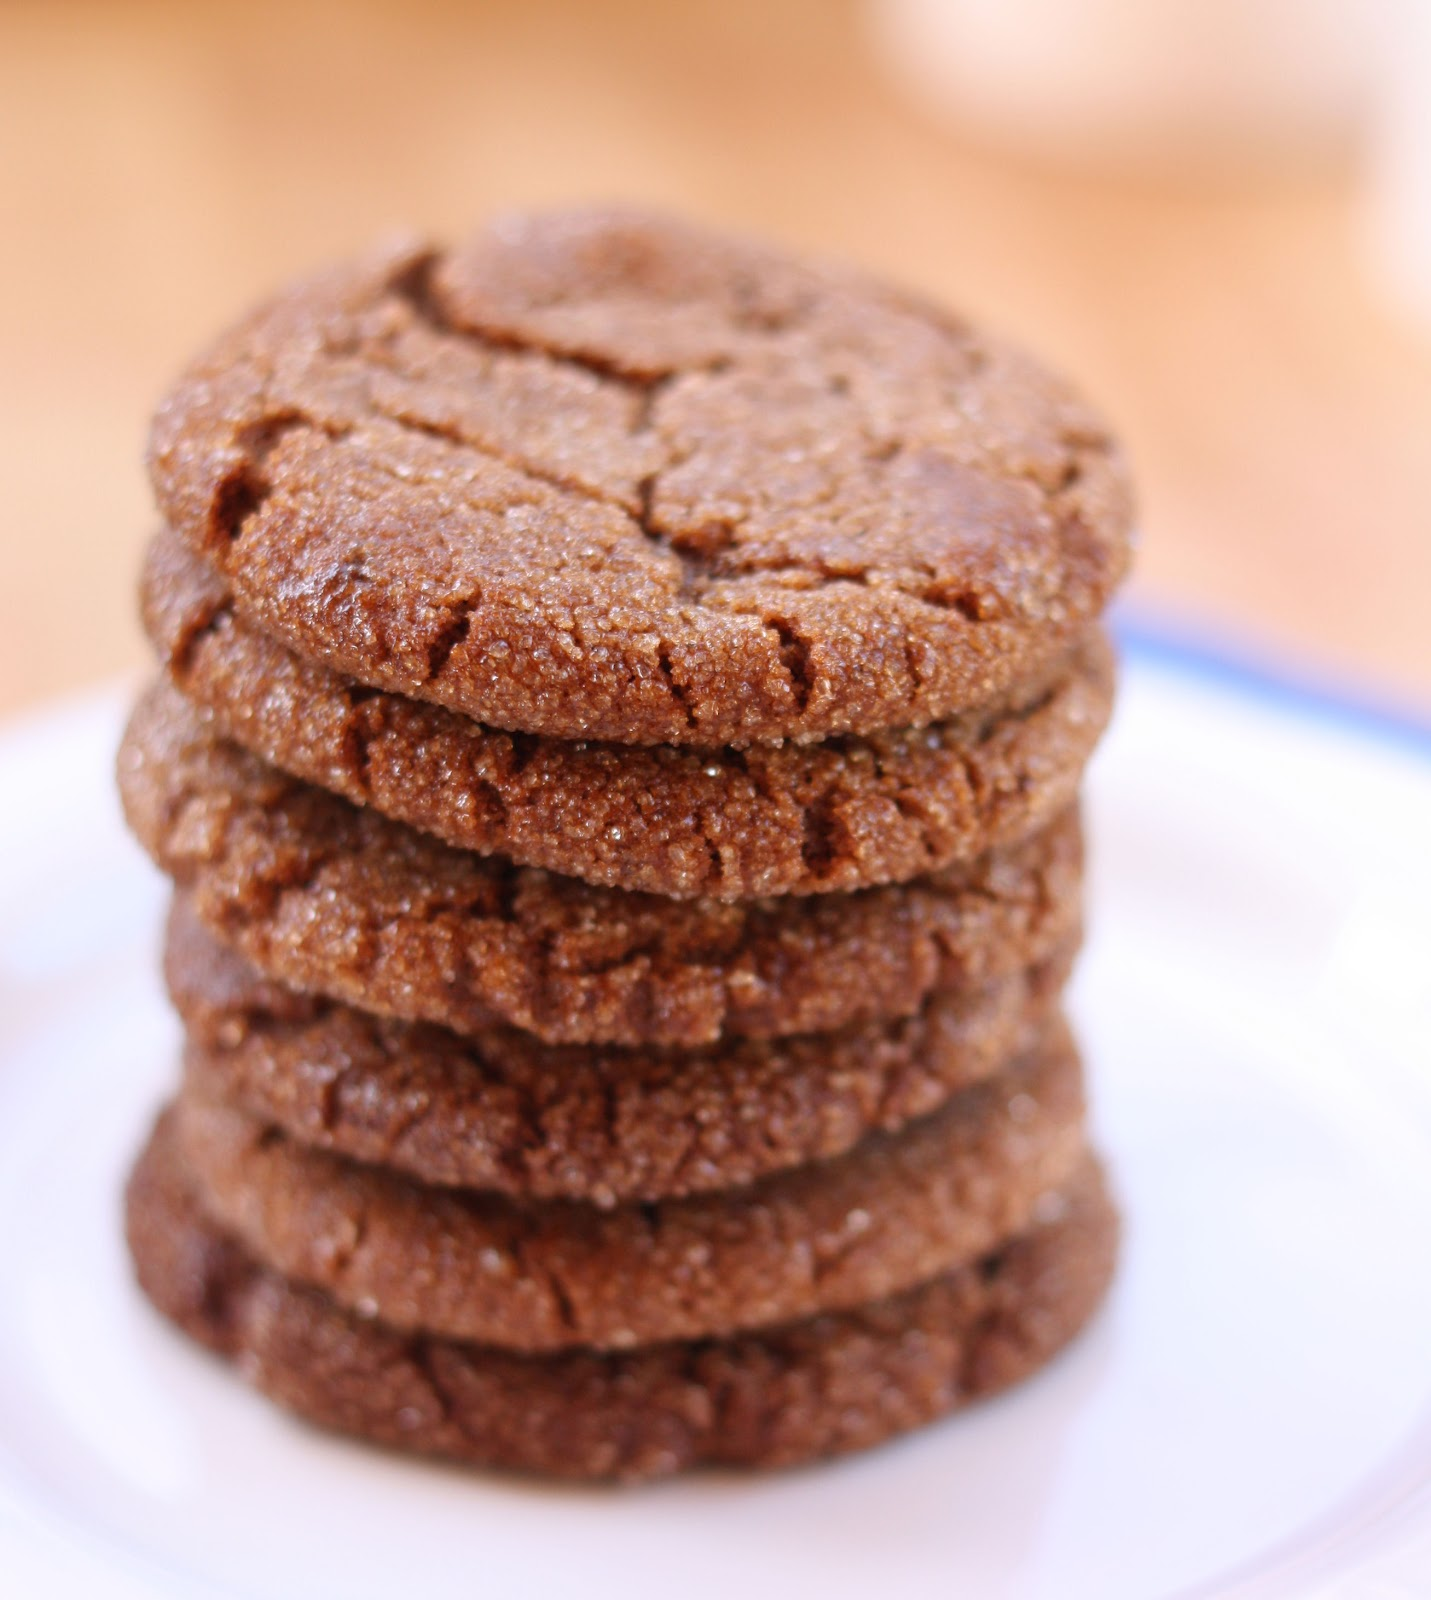 ... adapted from Martha Stewart's Chewy Chocolate Gingerbread Cookies